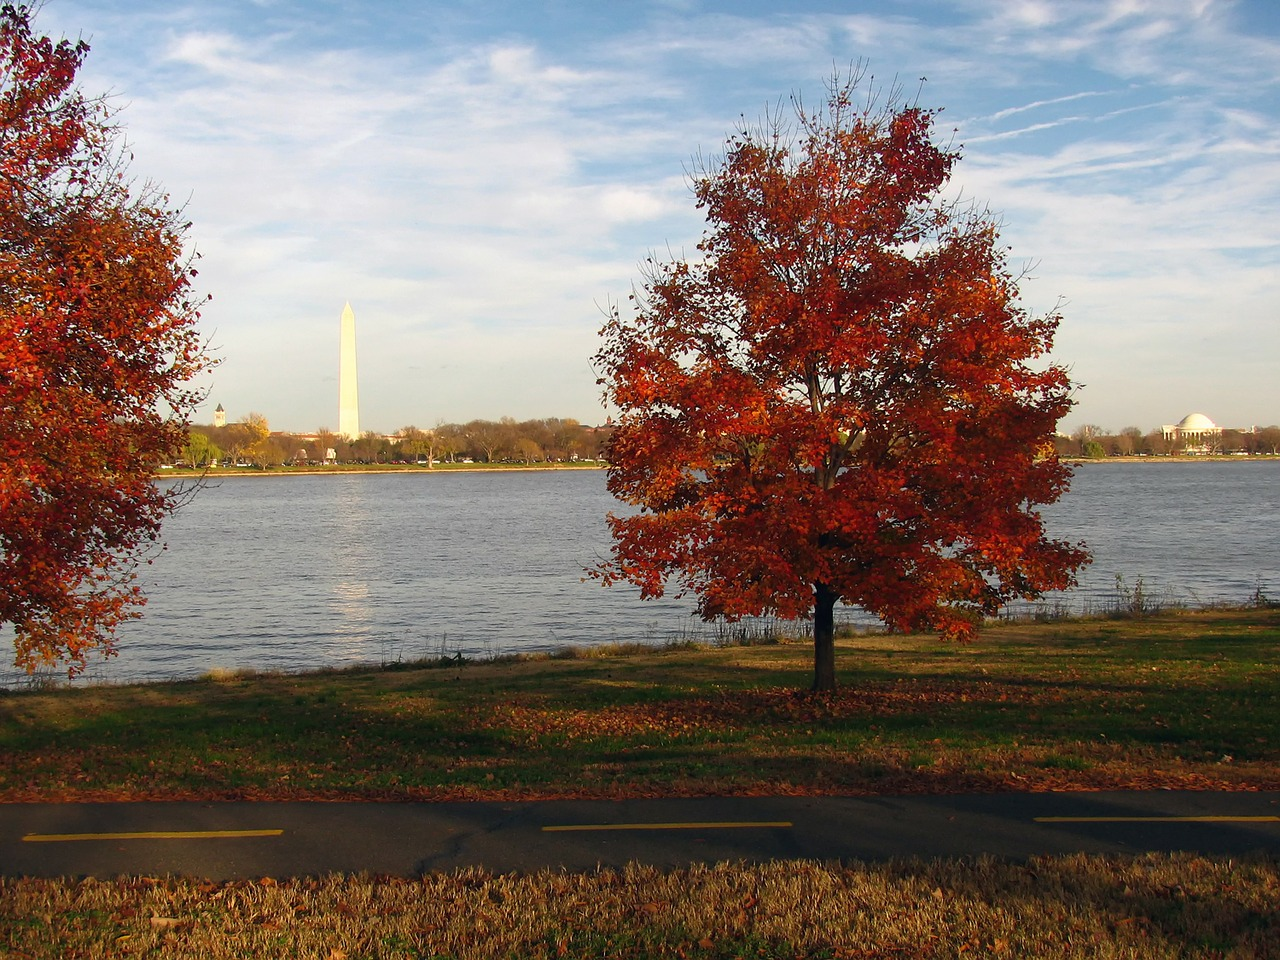 DC Water announced the Anacostia River Tunnel has been improving storm water quality in the watershed